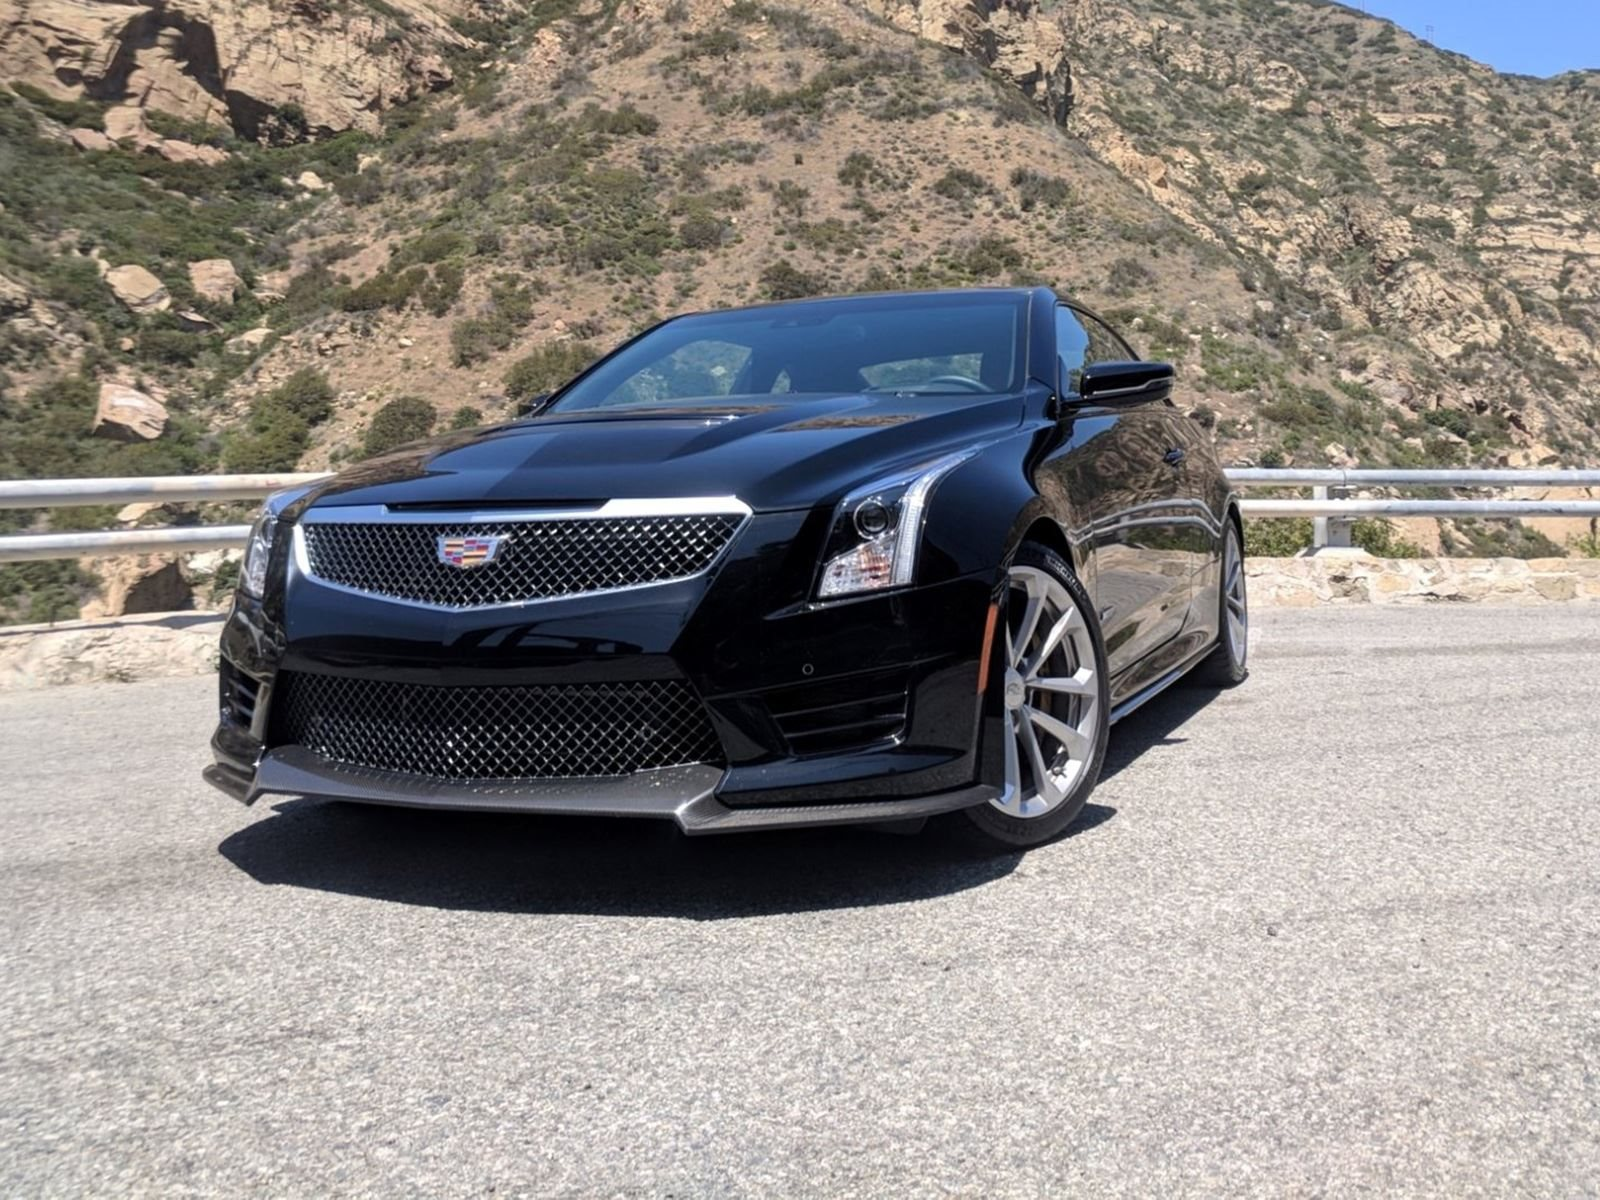 8 Things Cadillac Should Do To Build The Perfect ATS-V